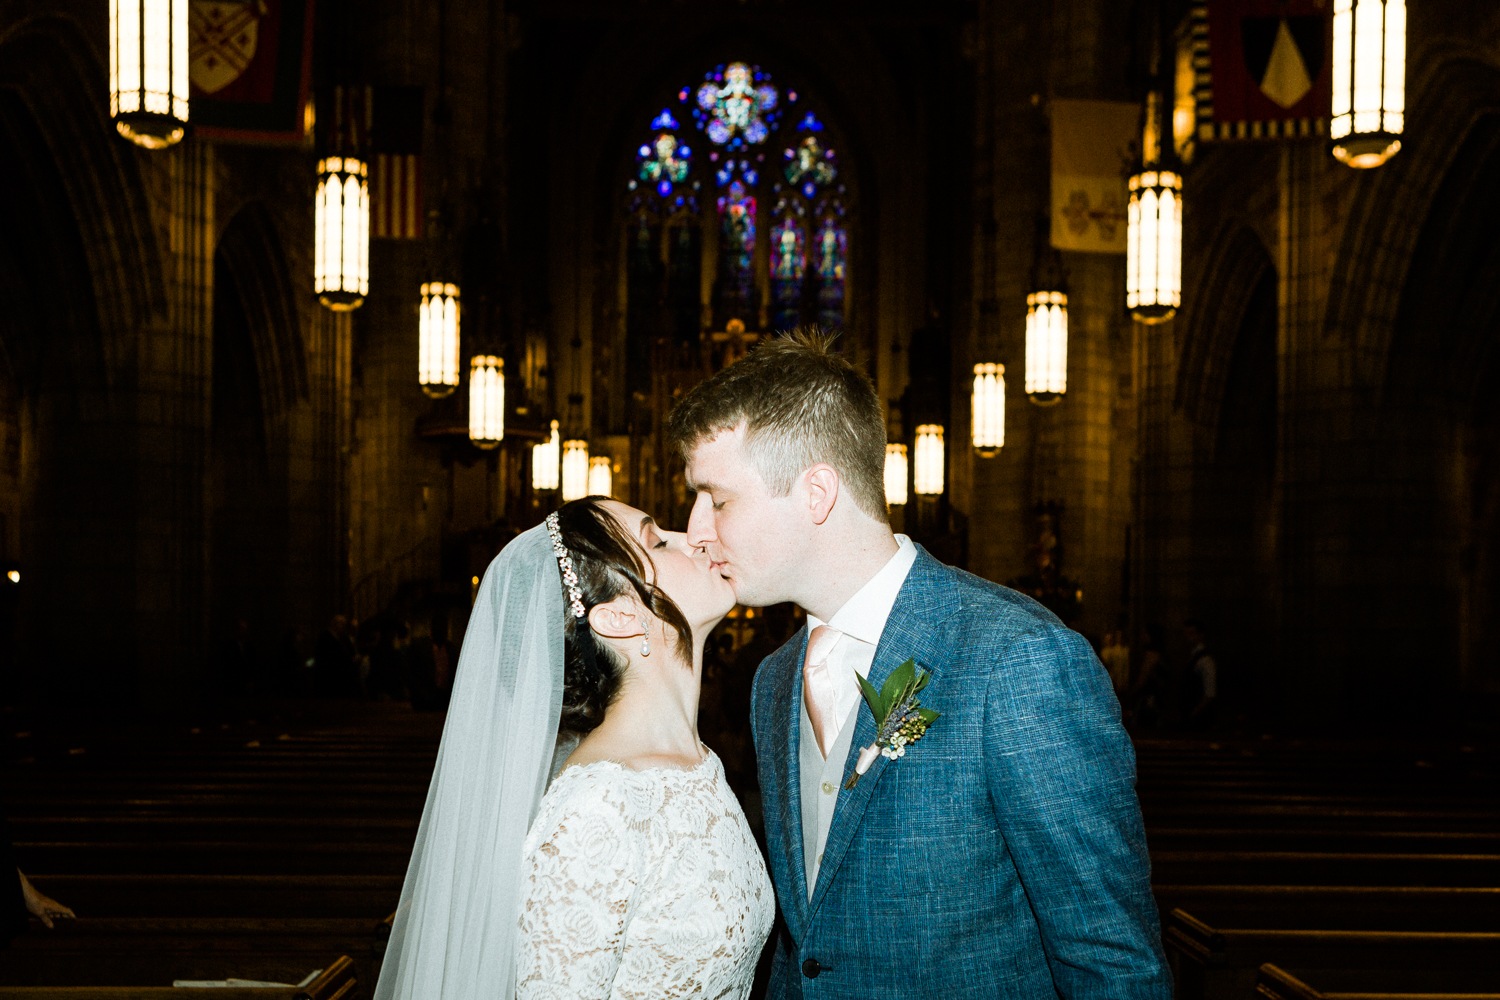 lissie_loomis_photo_nyc_brooklyn_wedding_engagement_photographer_photography-37.JPG